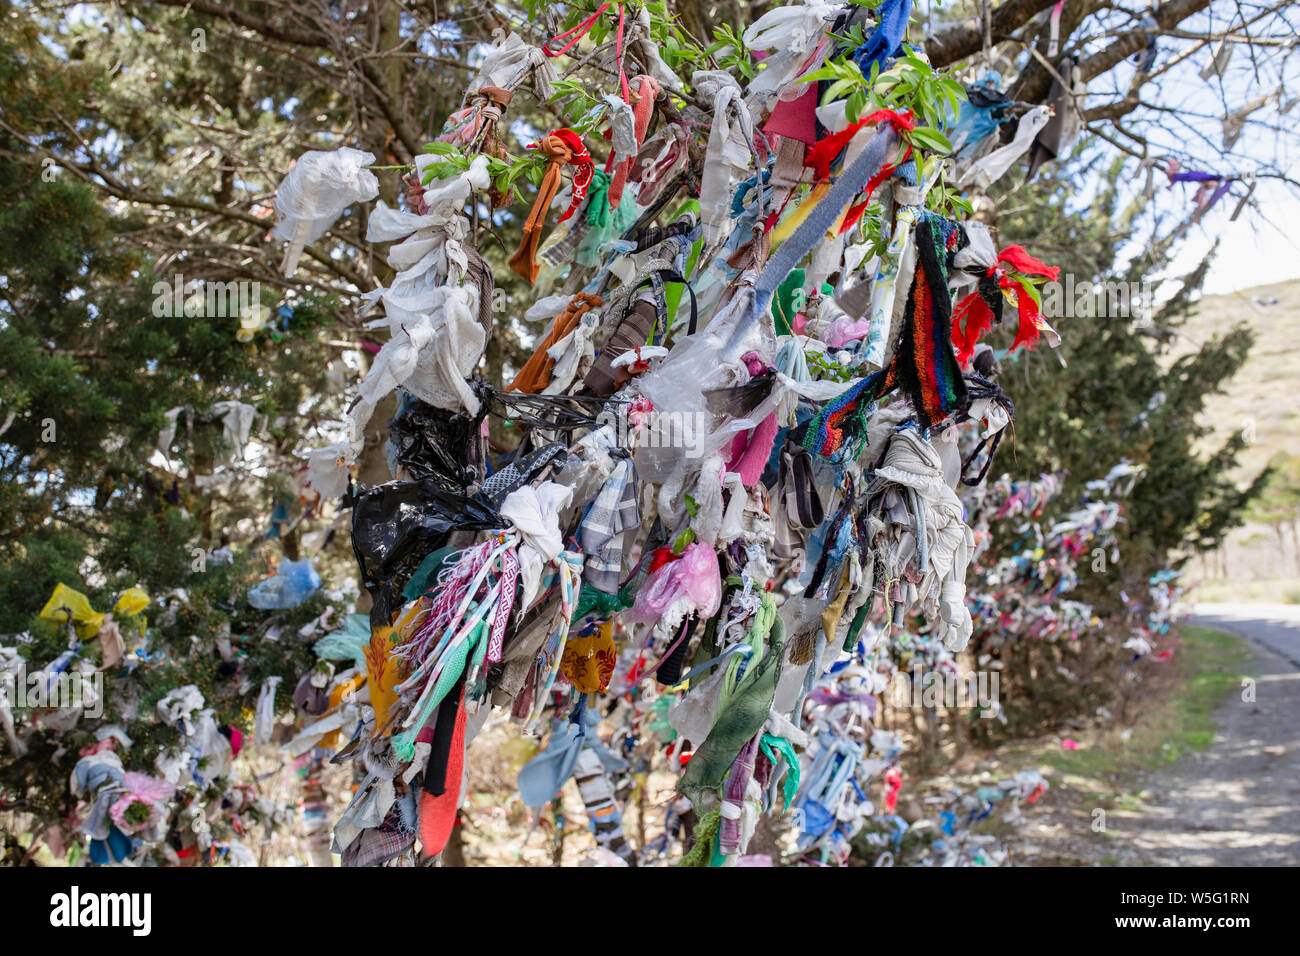 Making a mess. Wedding tradition in Georgia, Decoration - colorful ribbons, even garbage on bush and trees, on the young couple's way. Stock Photo